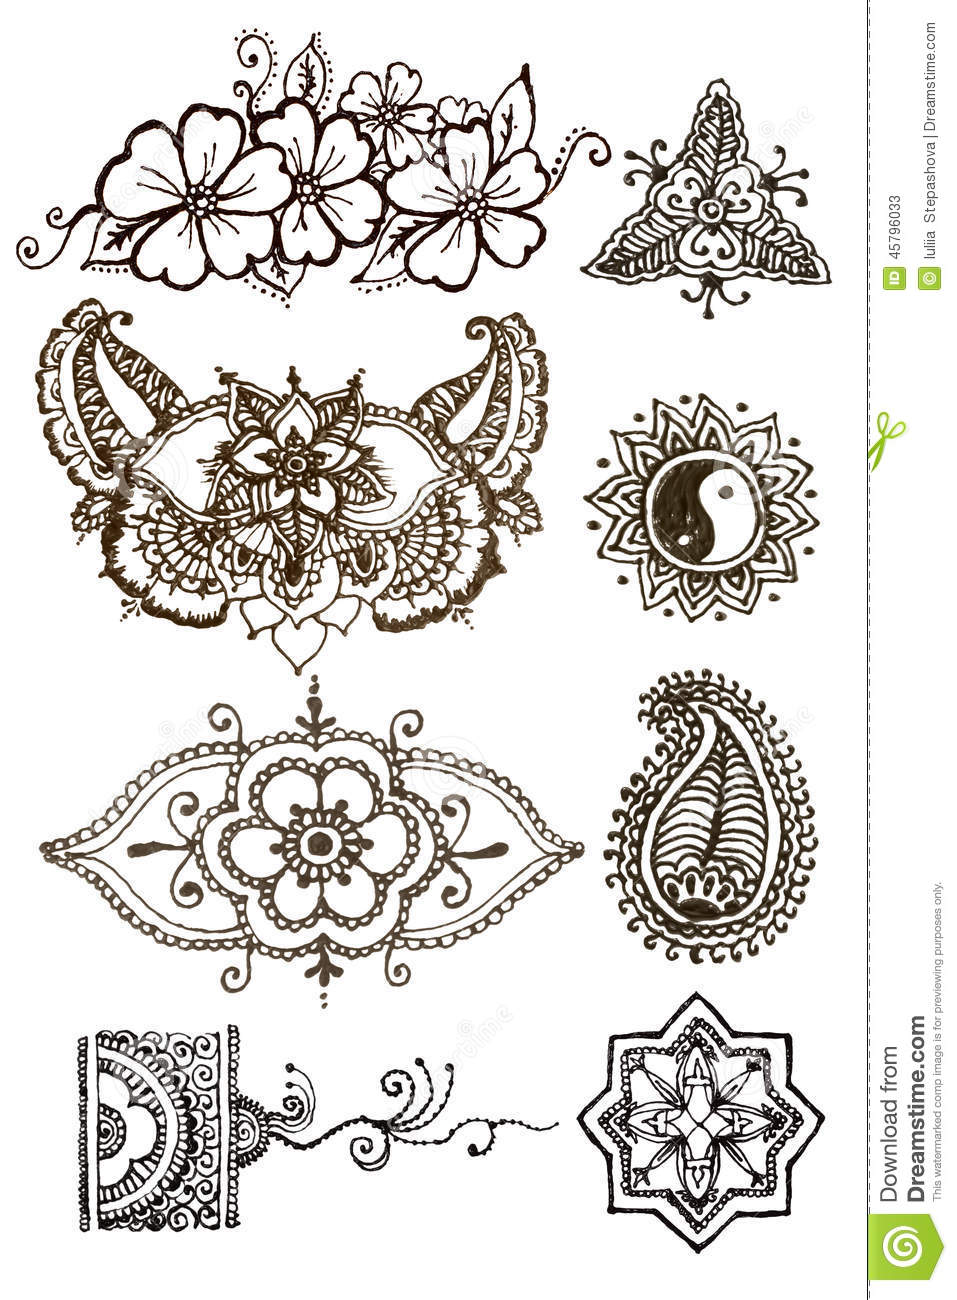 henna patterns tattoo on a white background stock illustration image 45796033. Black Bedroom Furniture Sets. Home Design Ideas